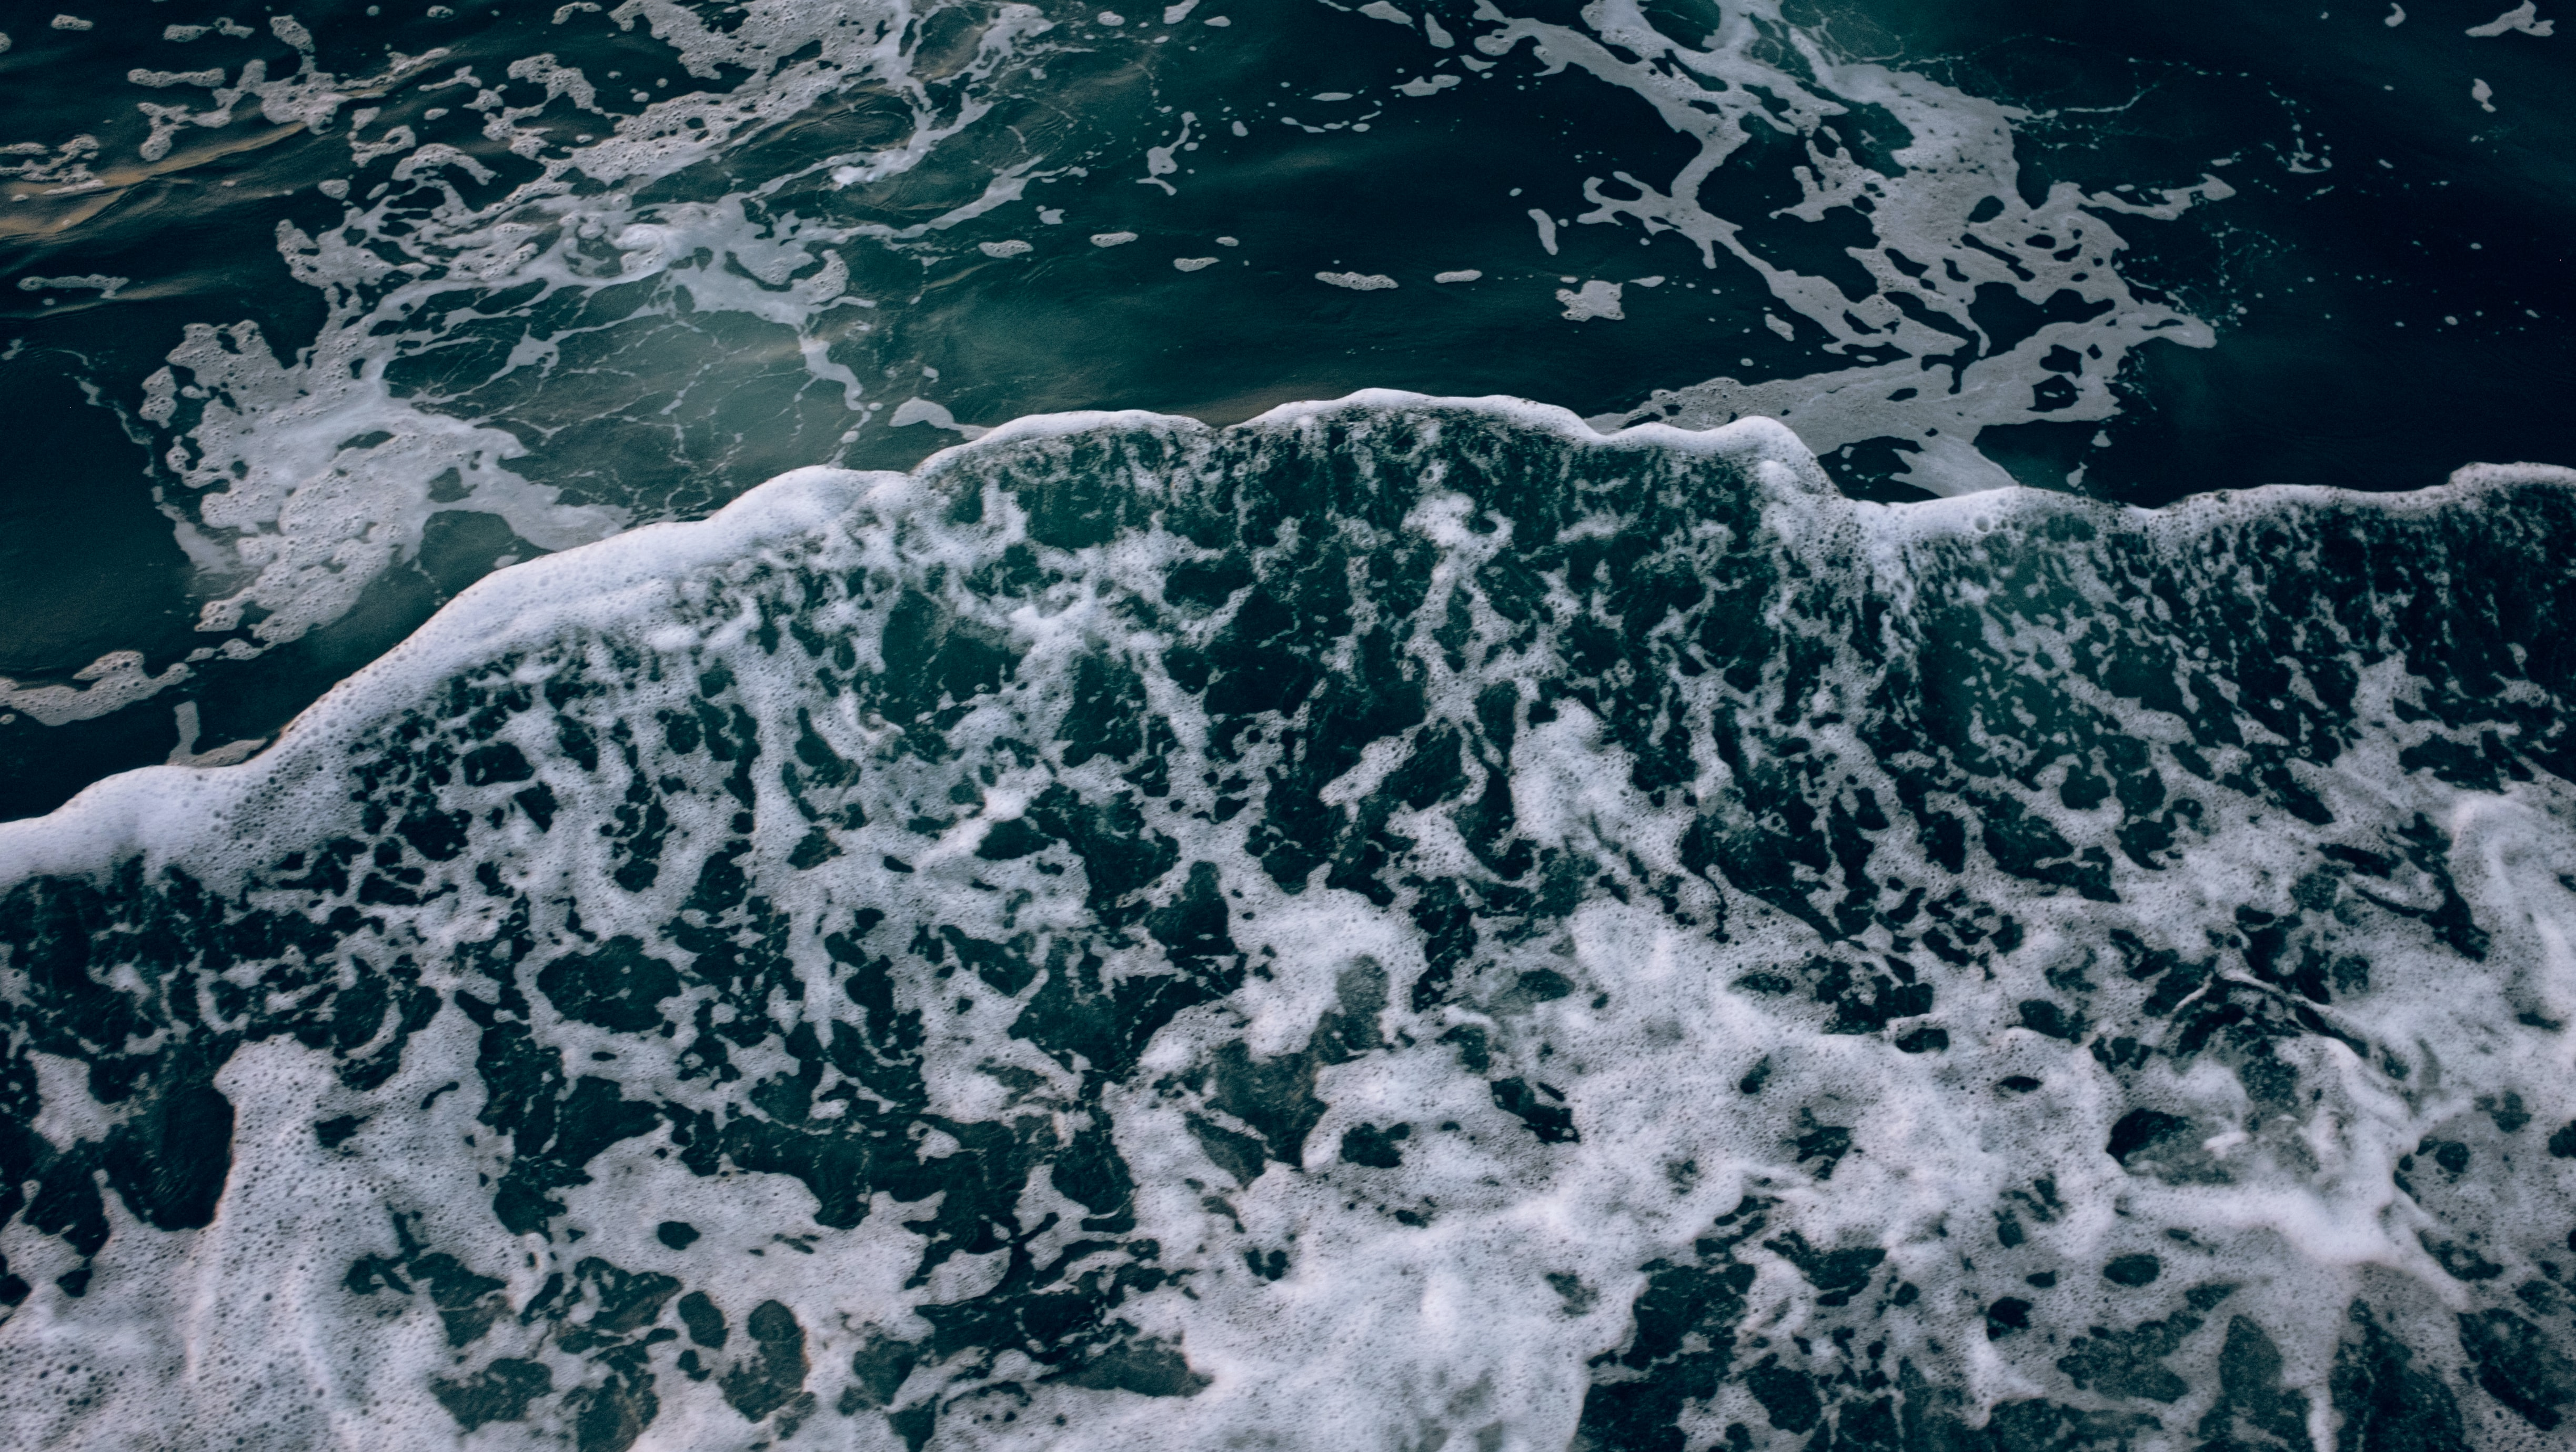 The frothy foamy deep blue waves of the ocean